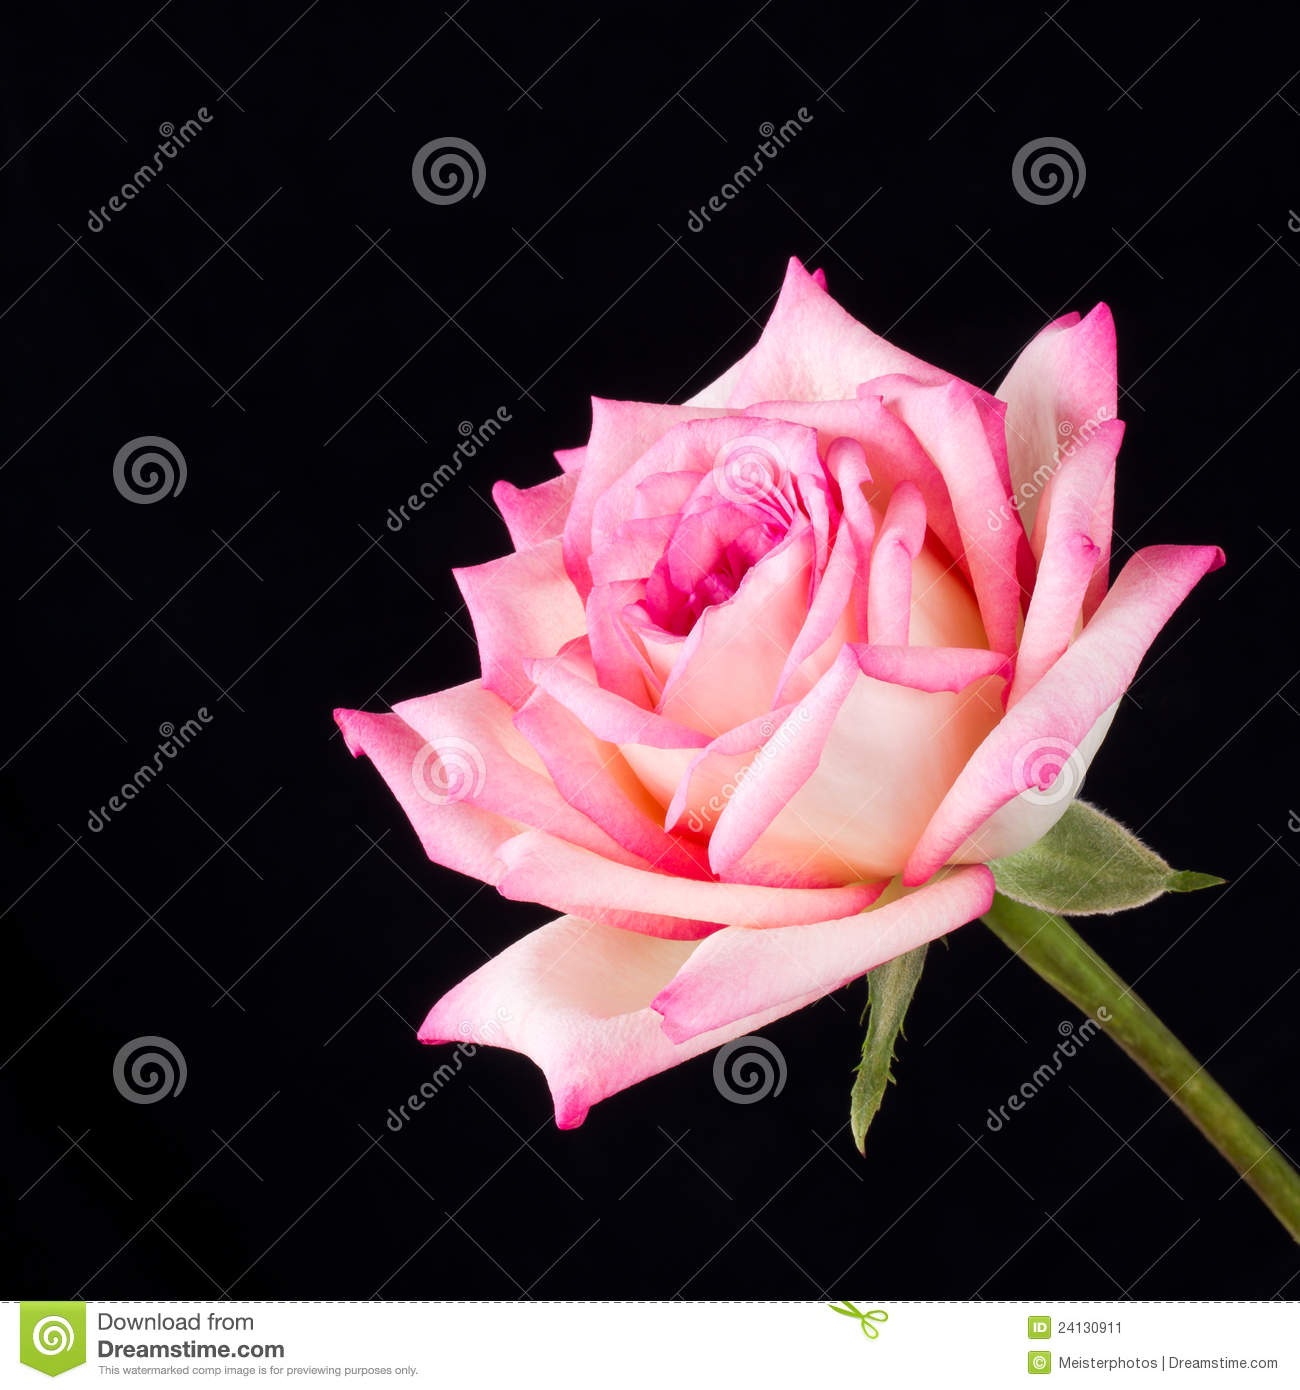 Tea Rose Clipart Black And White: Pink And Ivory Tea Rose On Black Background Stock Image